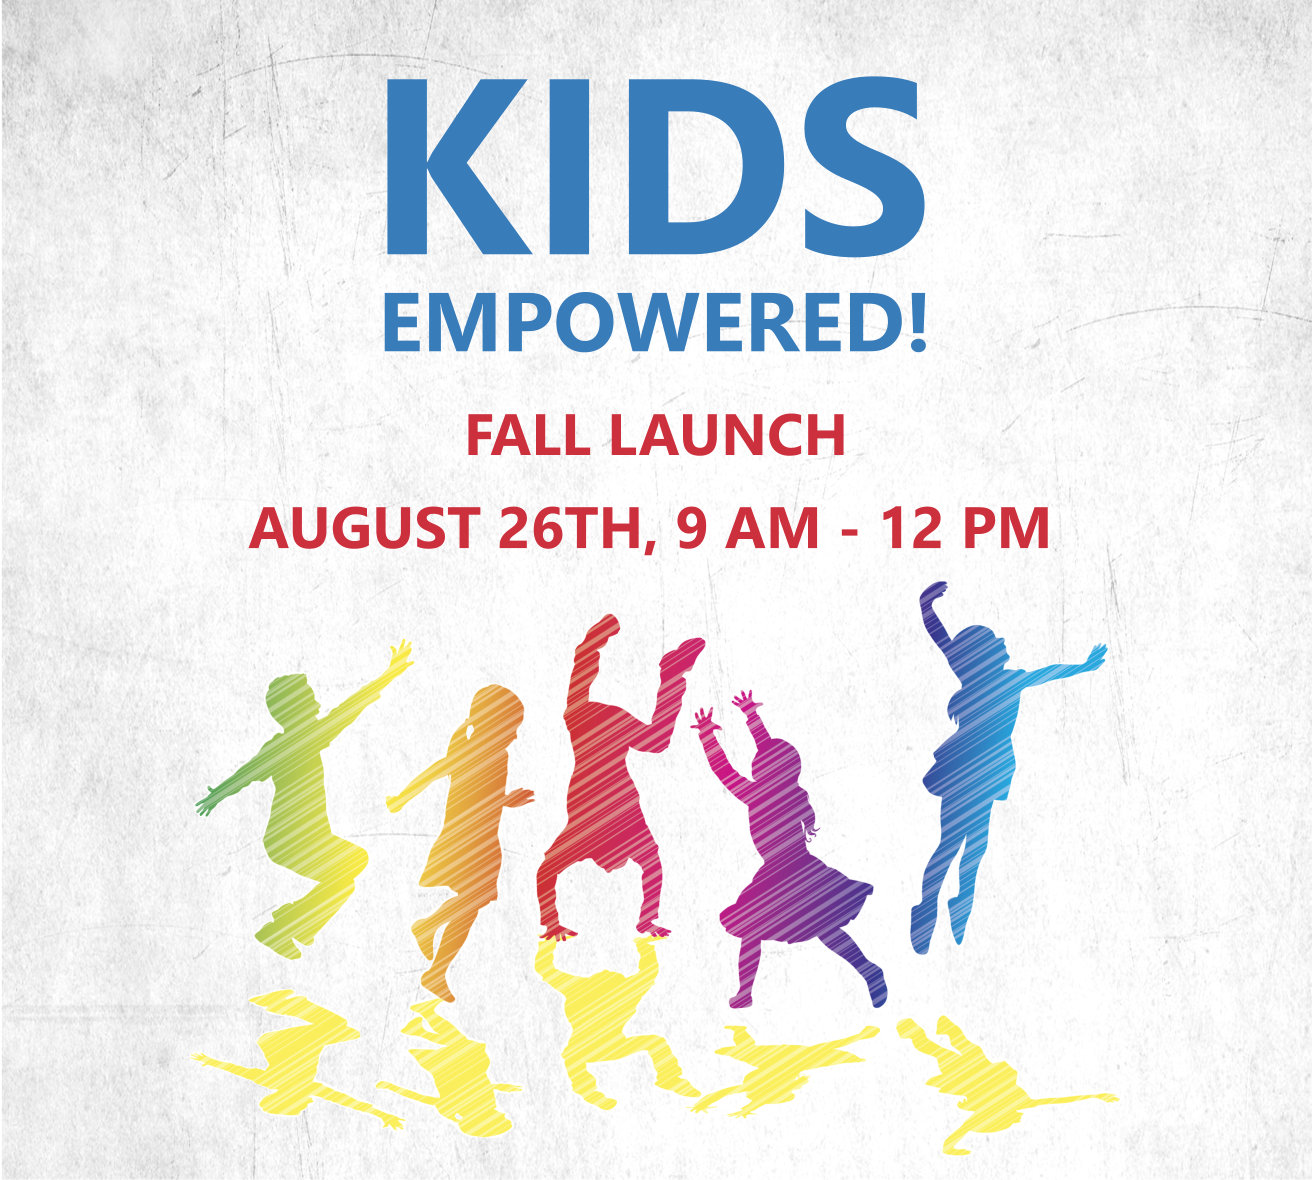 KIDS EMPOWERED! Fall Launch on Saturday, August 26th